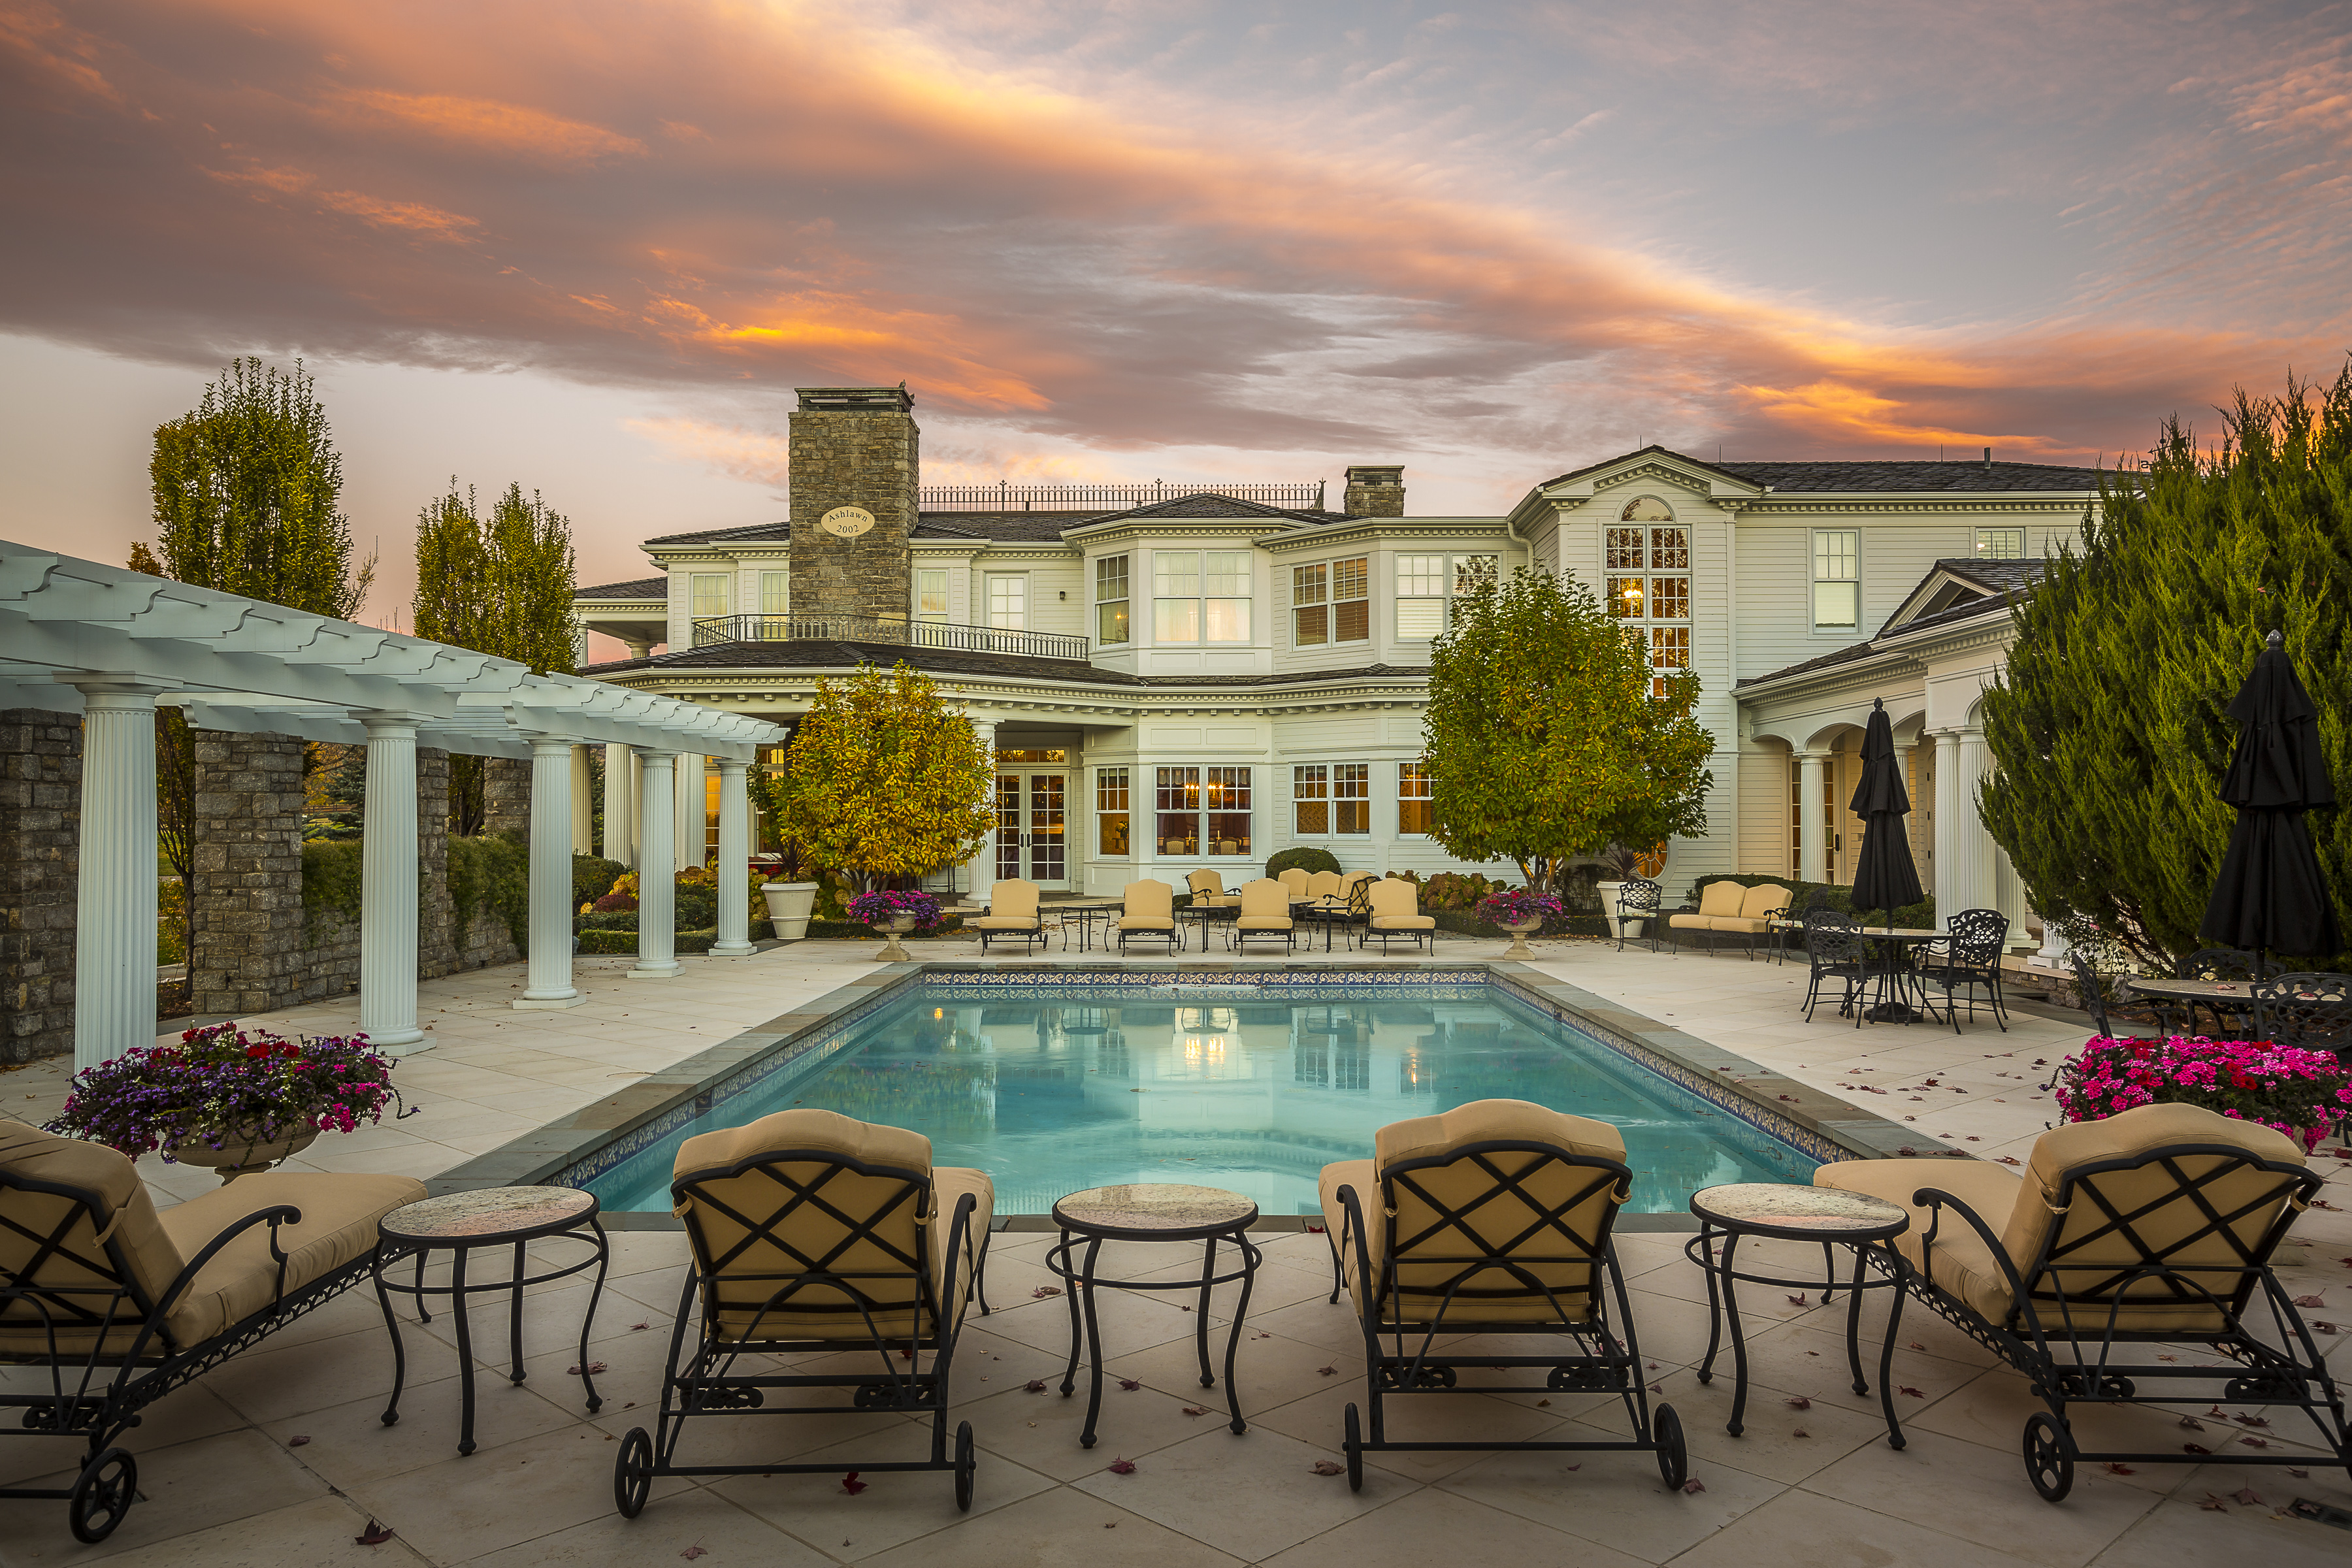 The Ashlawn residence at 7484 N 49th Street, Boulder County. Listed by LIV Sotheby's International Realty for $22,200,000.